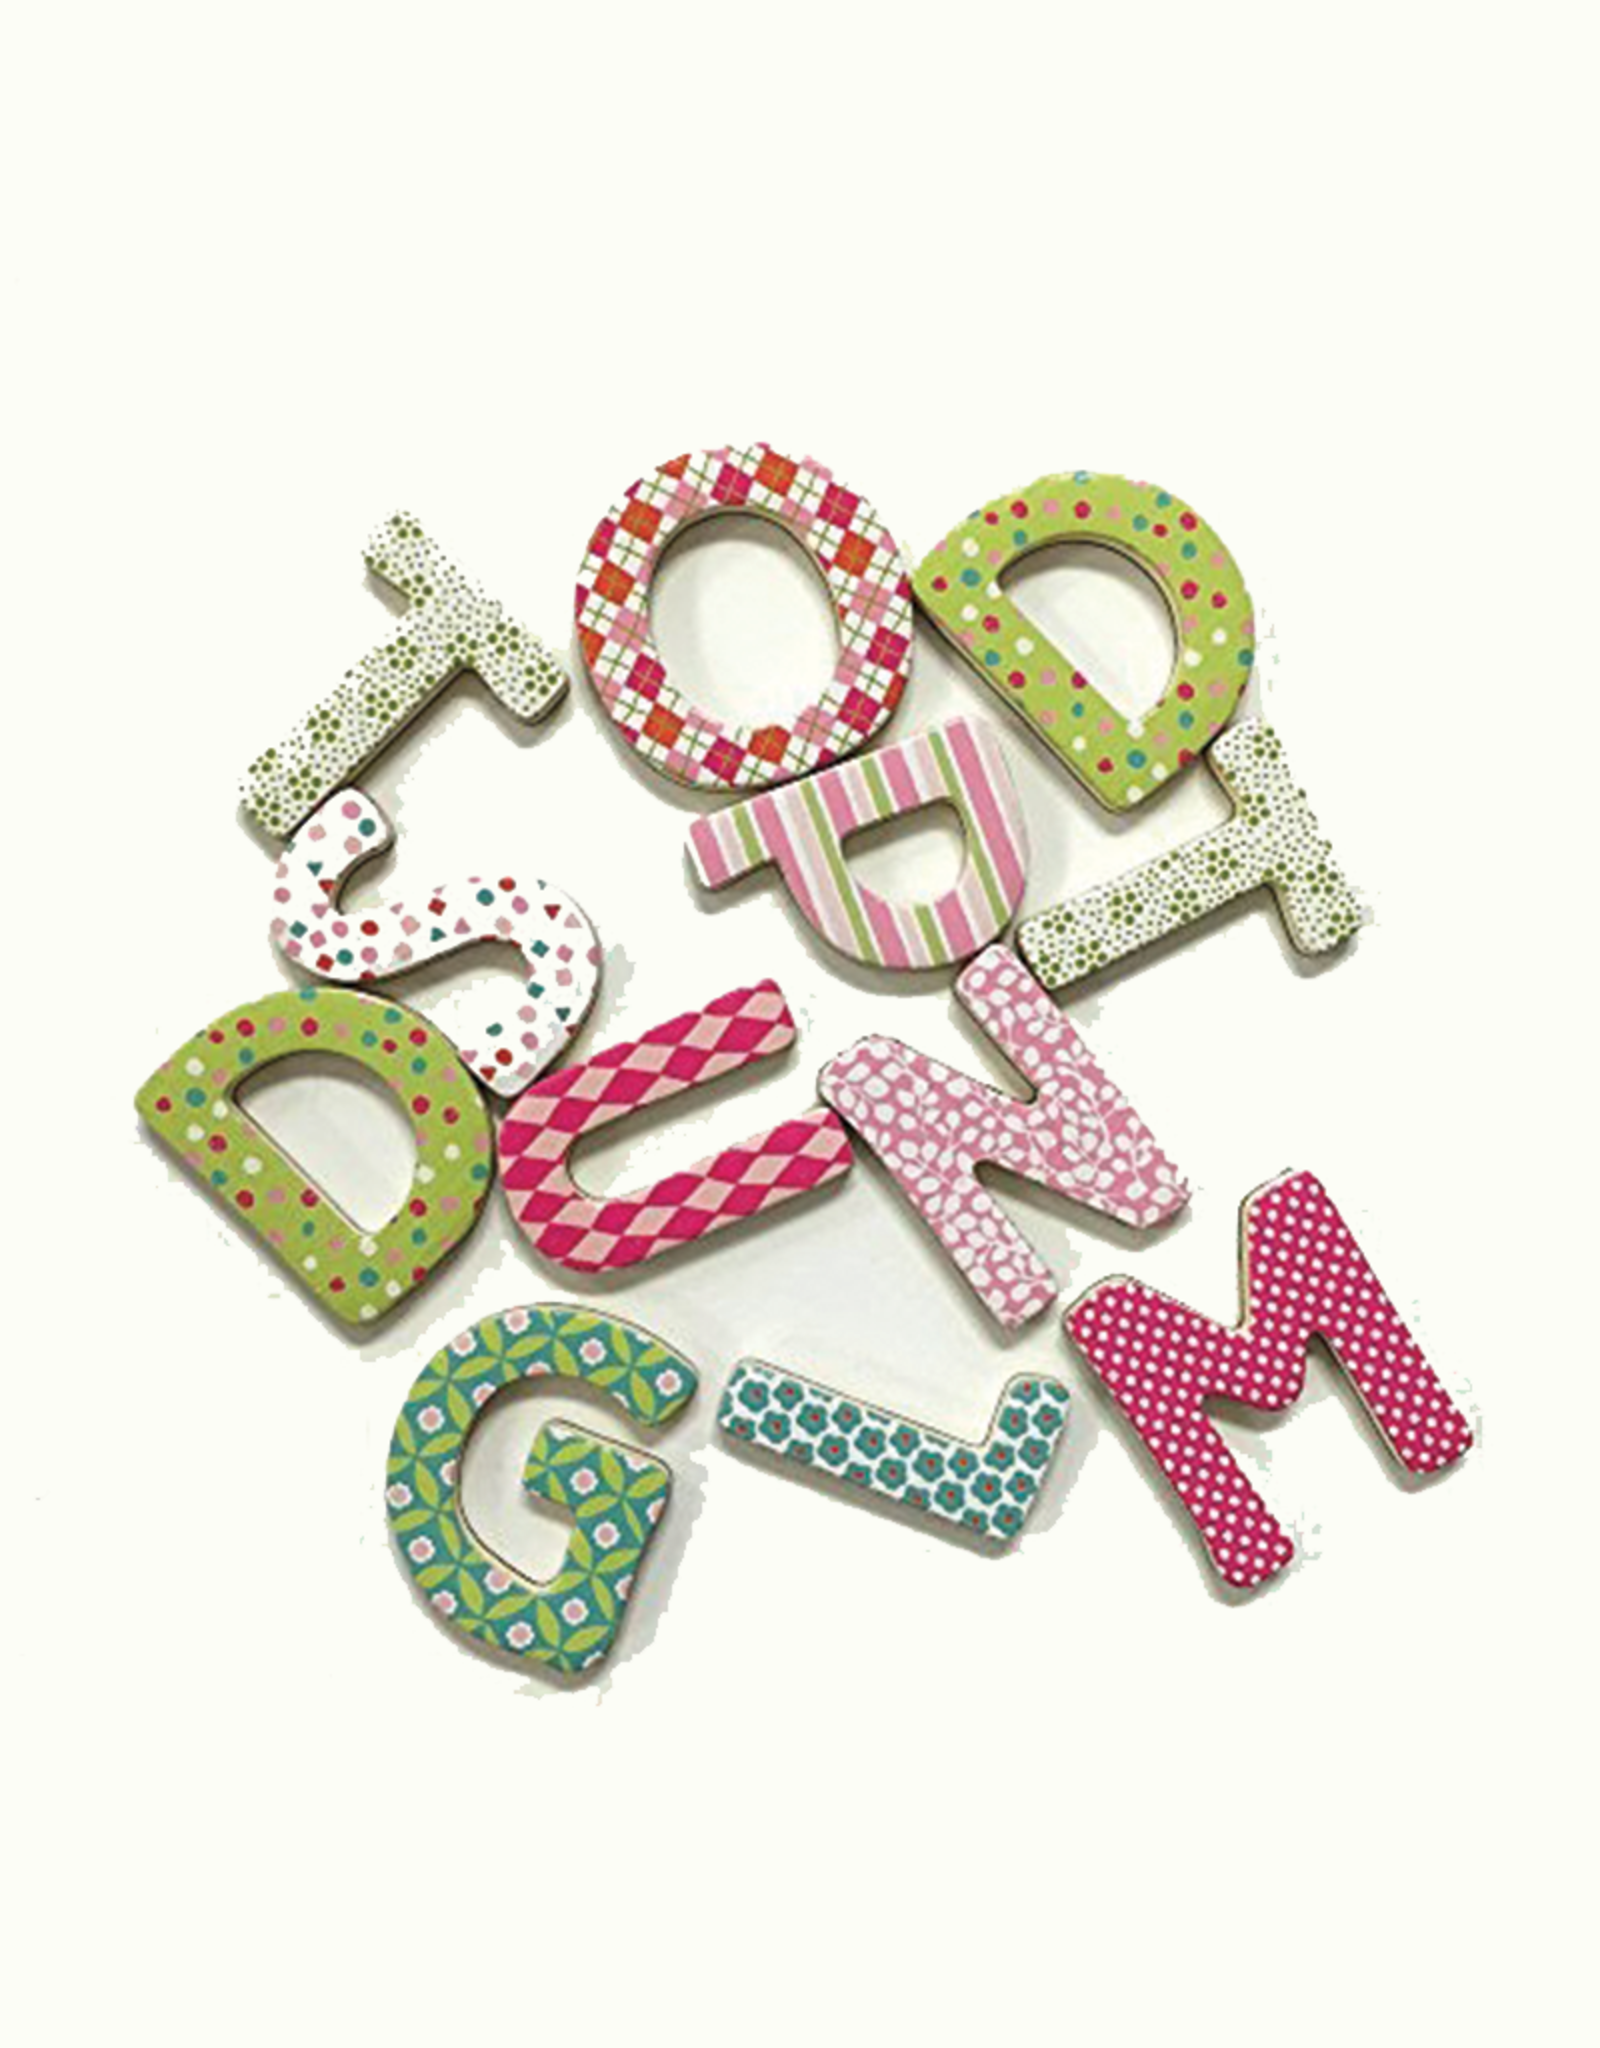 Mudpuppy Sweet Patterns Magnetic Uppercase Letters